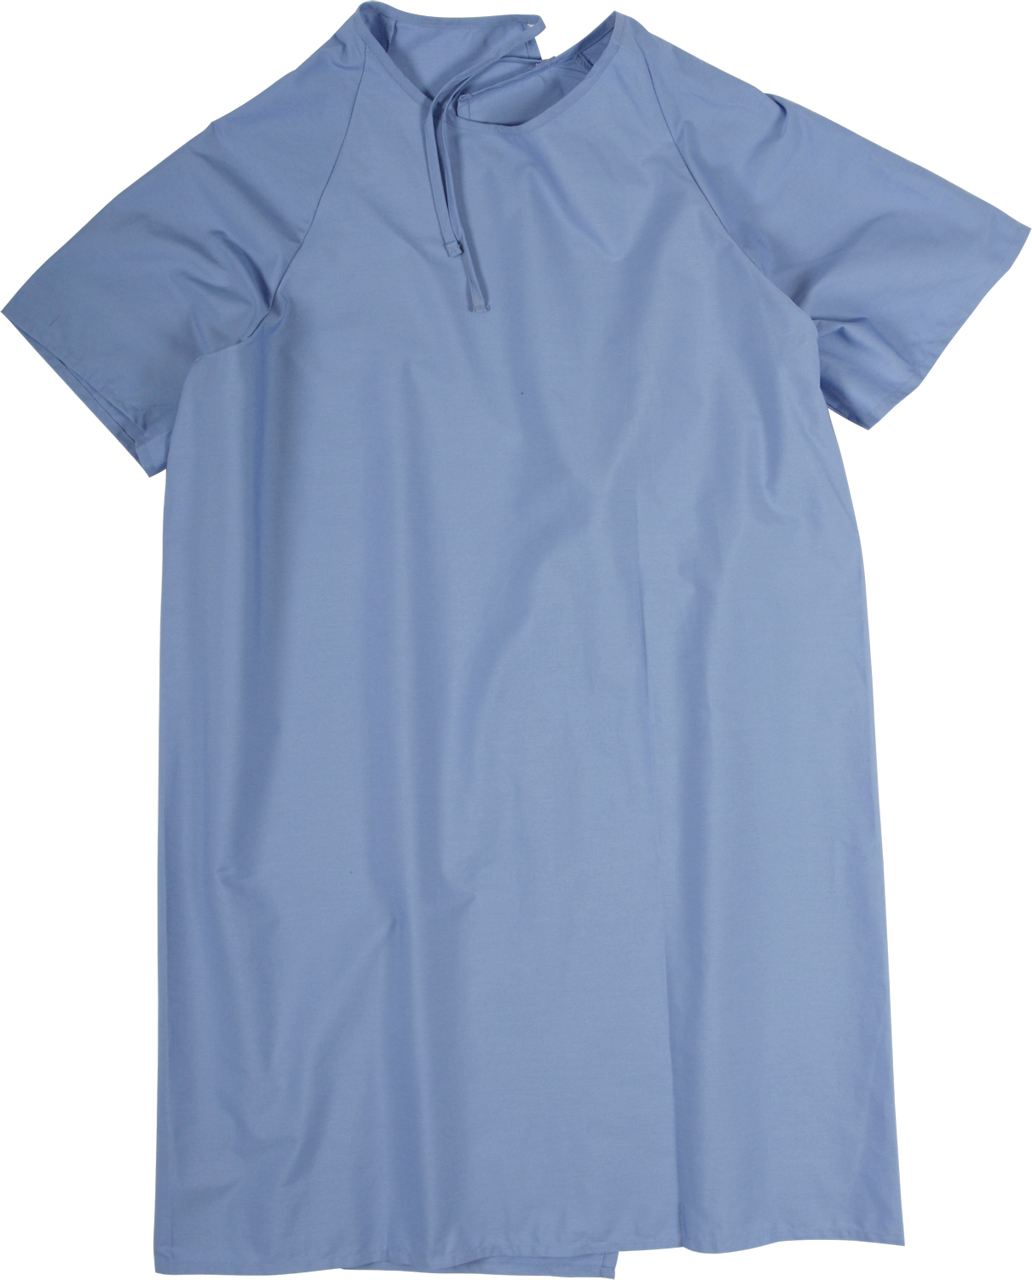 Picture of Premium Uniforms Overlapping Patient Gown